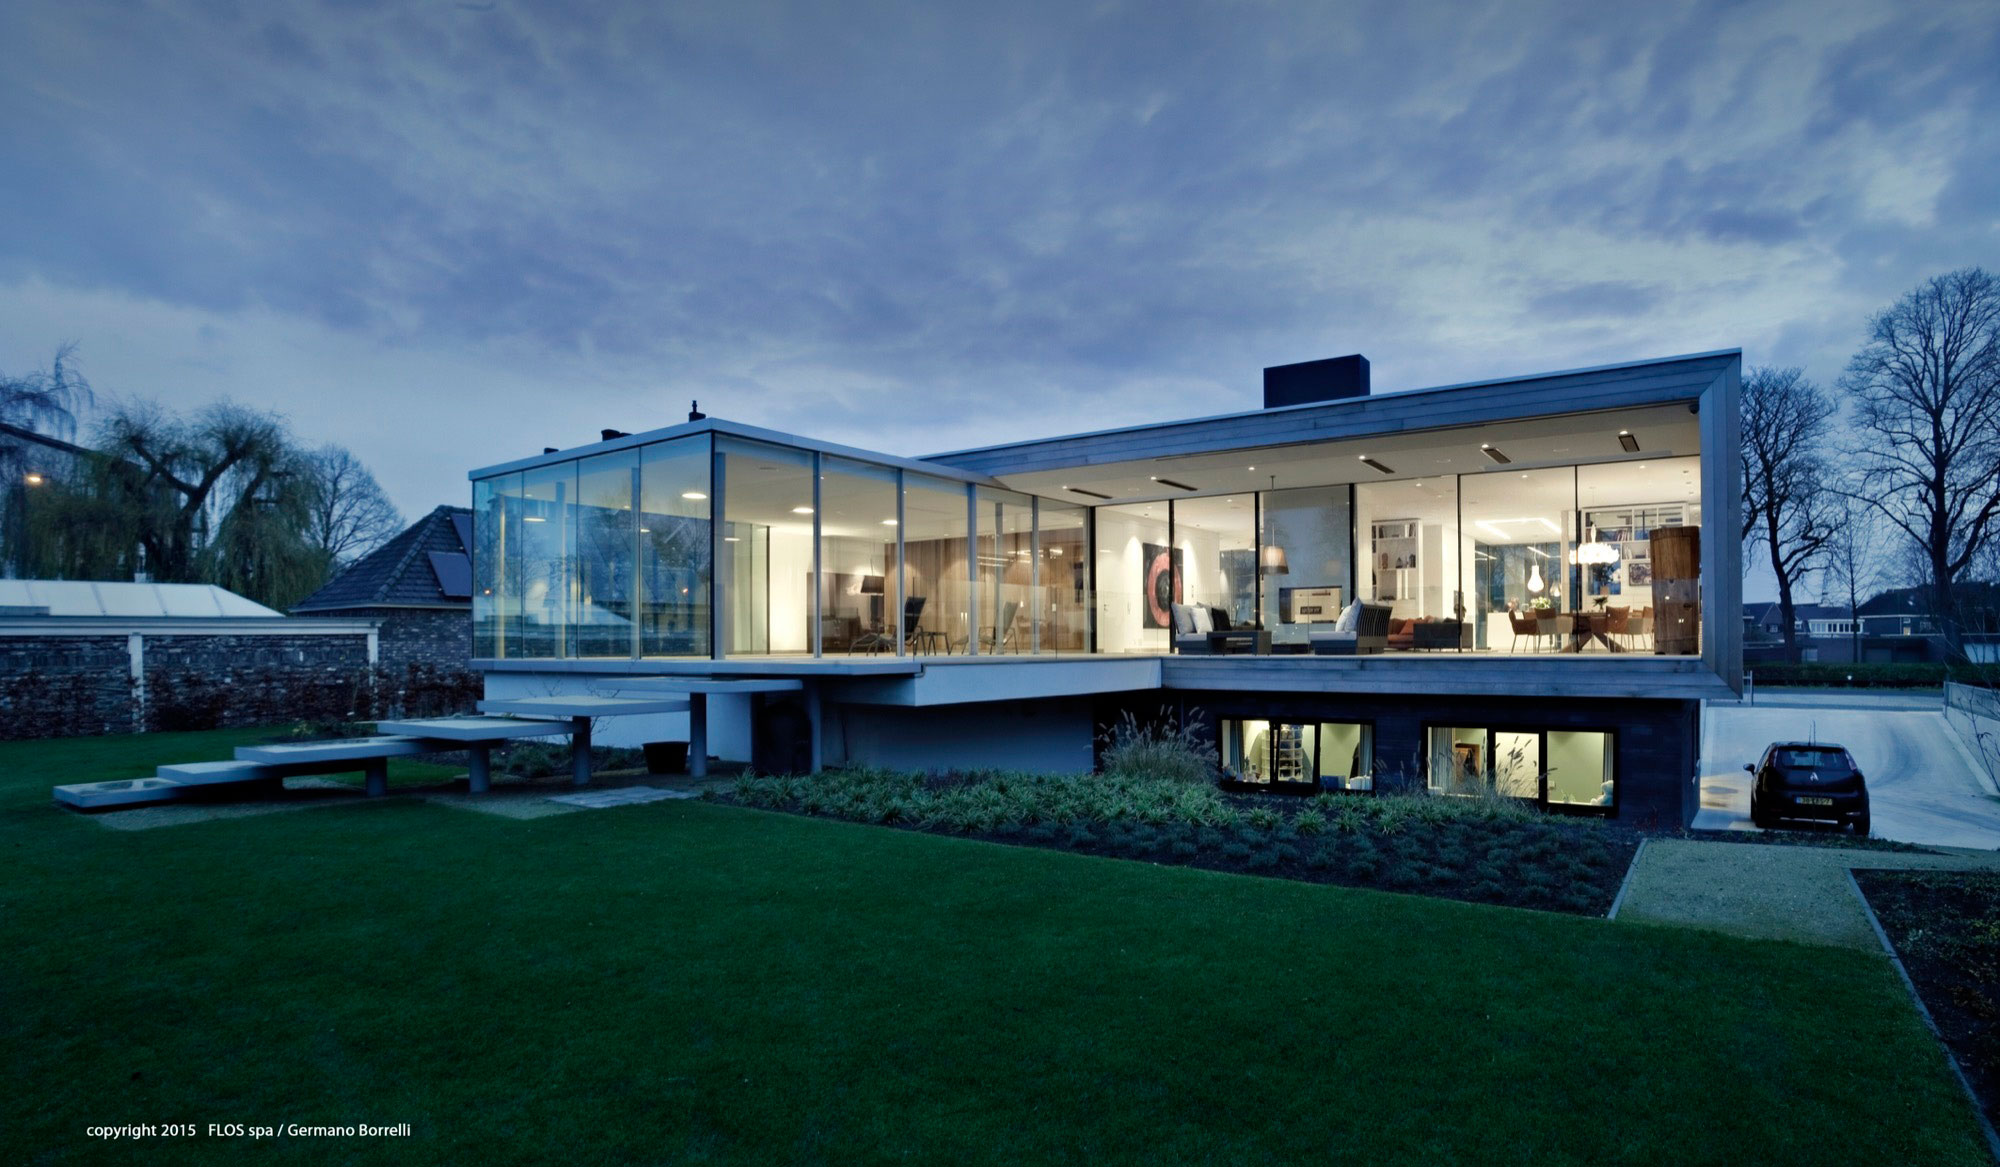 Liag Architects Design A Contemporary House In Weert The Netherlands